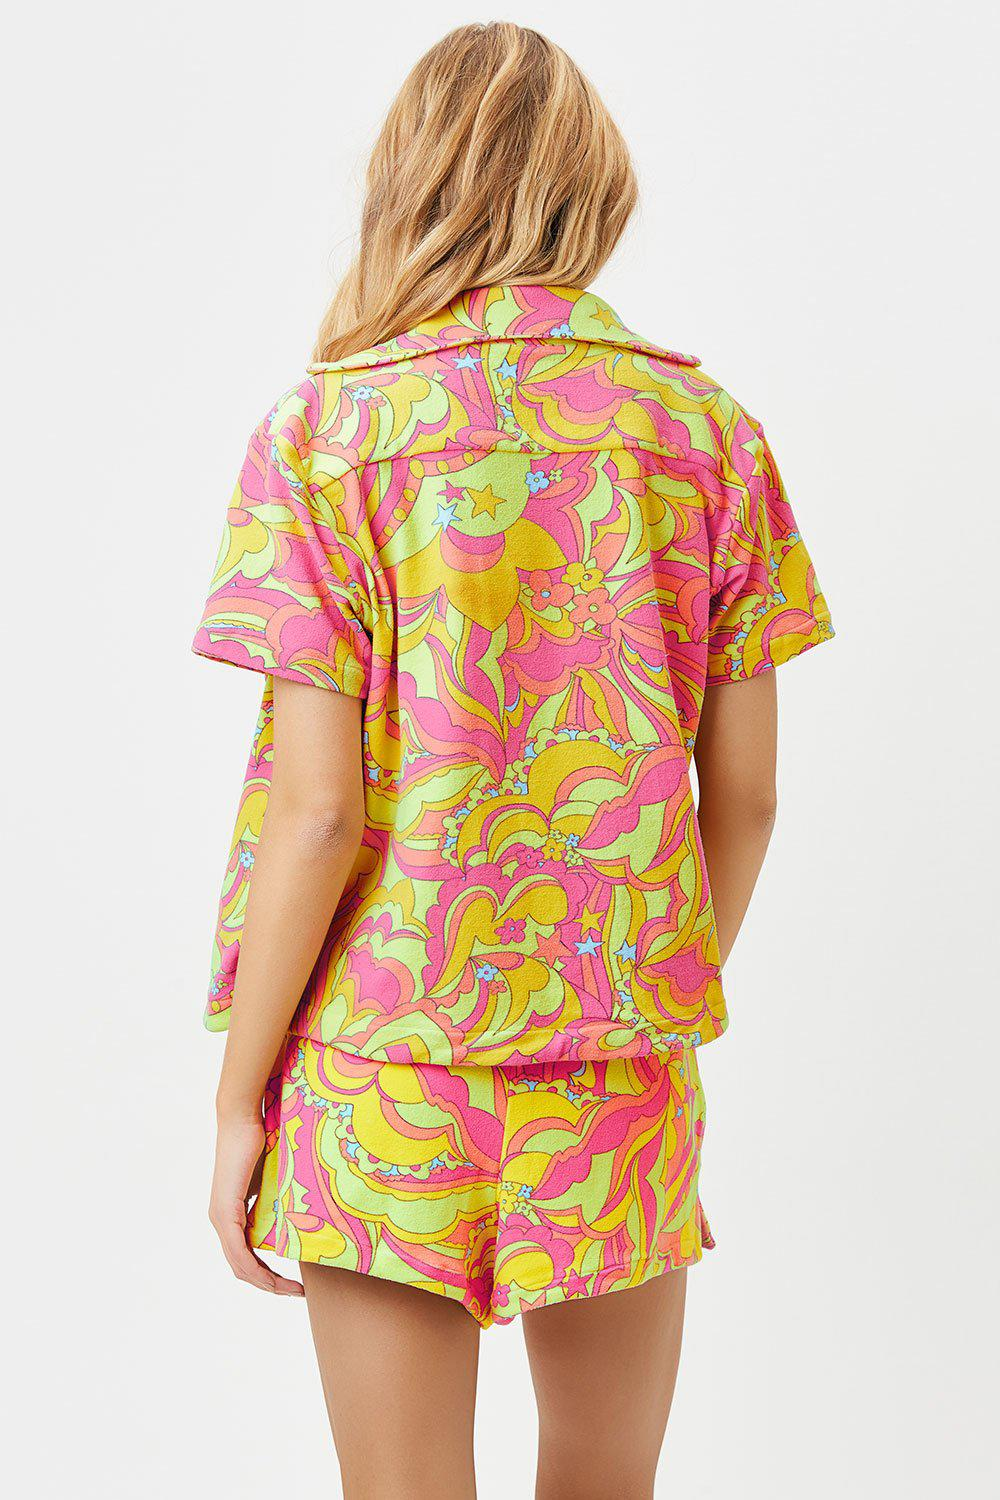 Coco Terry Button Up Shirt - Peace Terry 2